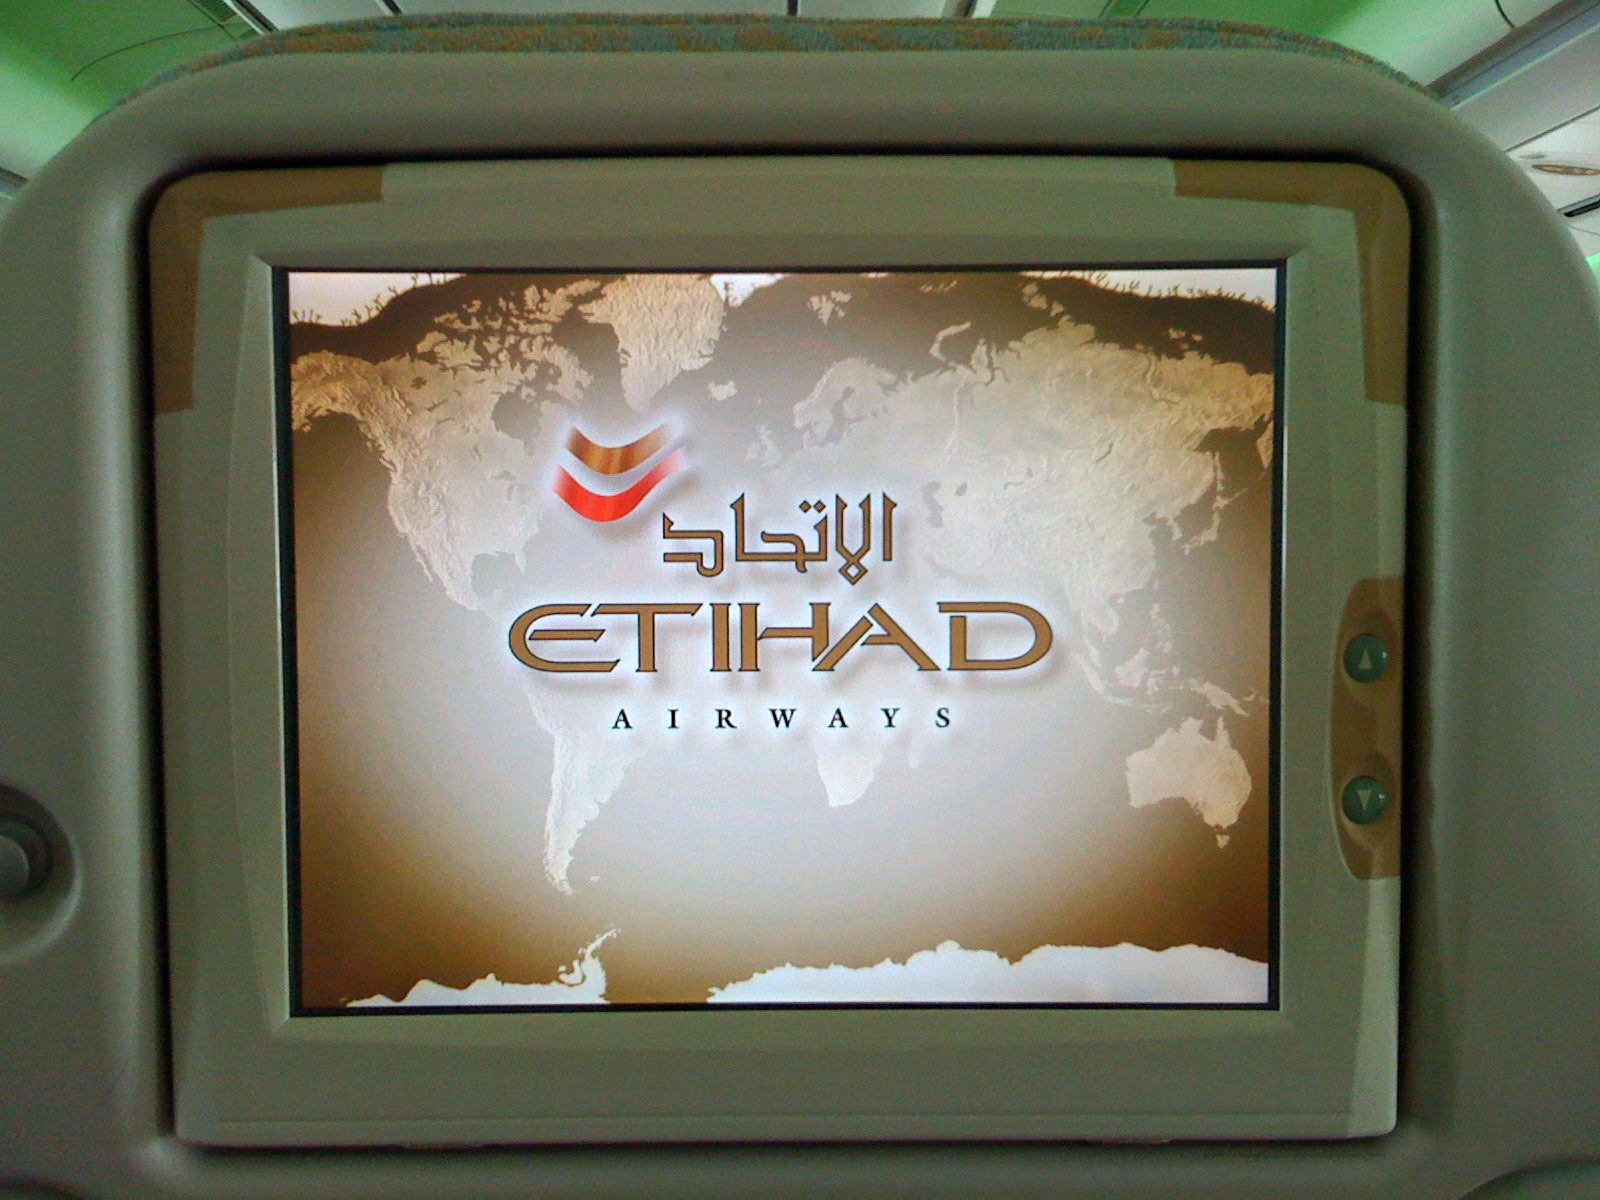 Description Etihad Airways to Abu Dhabi.jpg